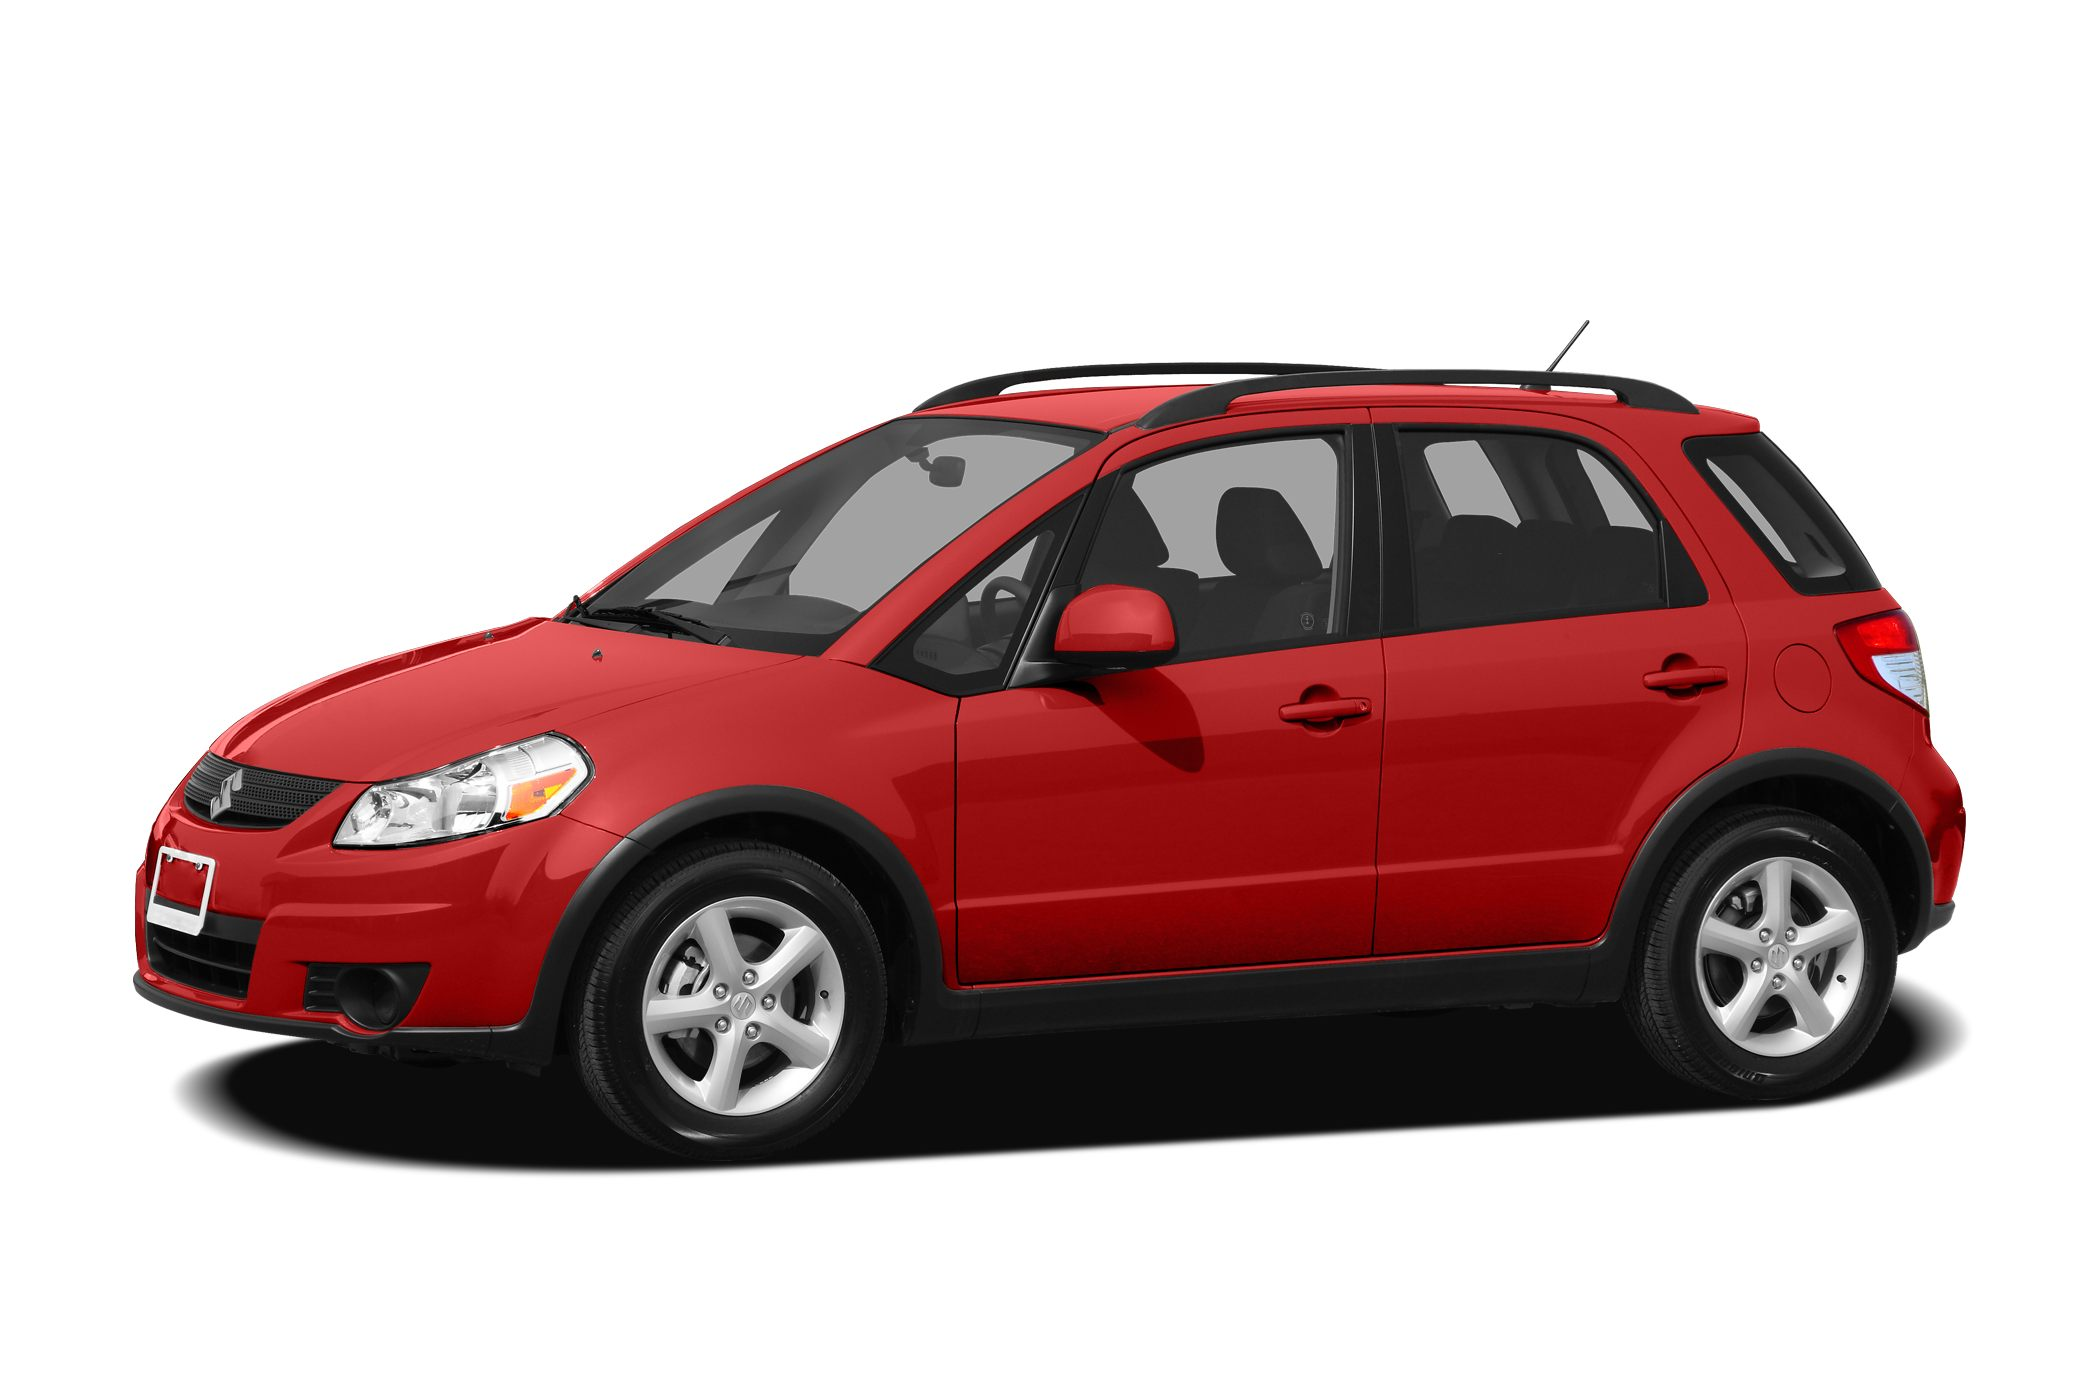 2009 Suzuki SX4 Touring Hatchback for sale in Lakewood for $9,980 with 45,911 miles.